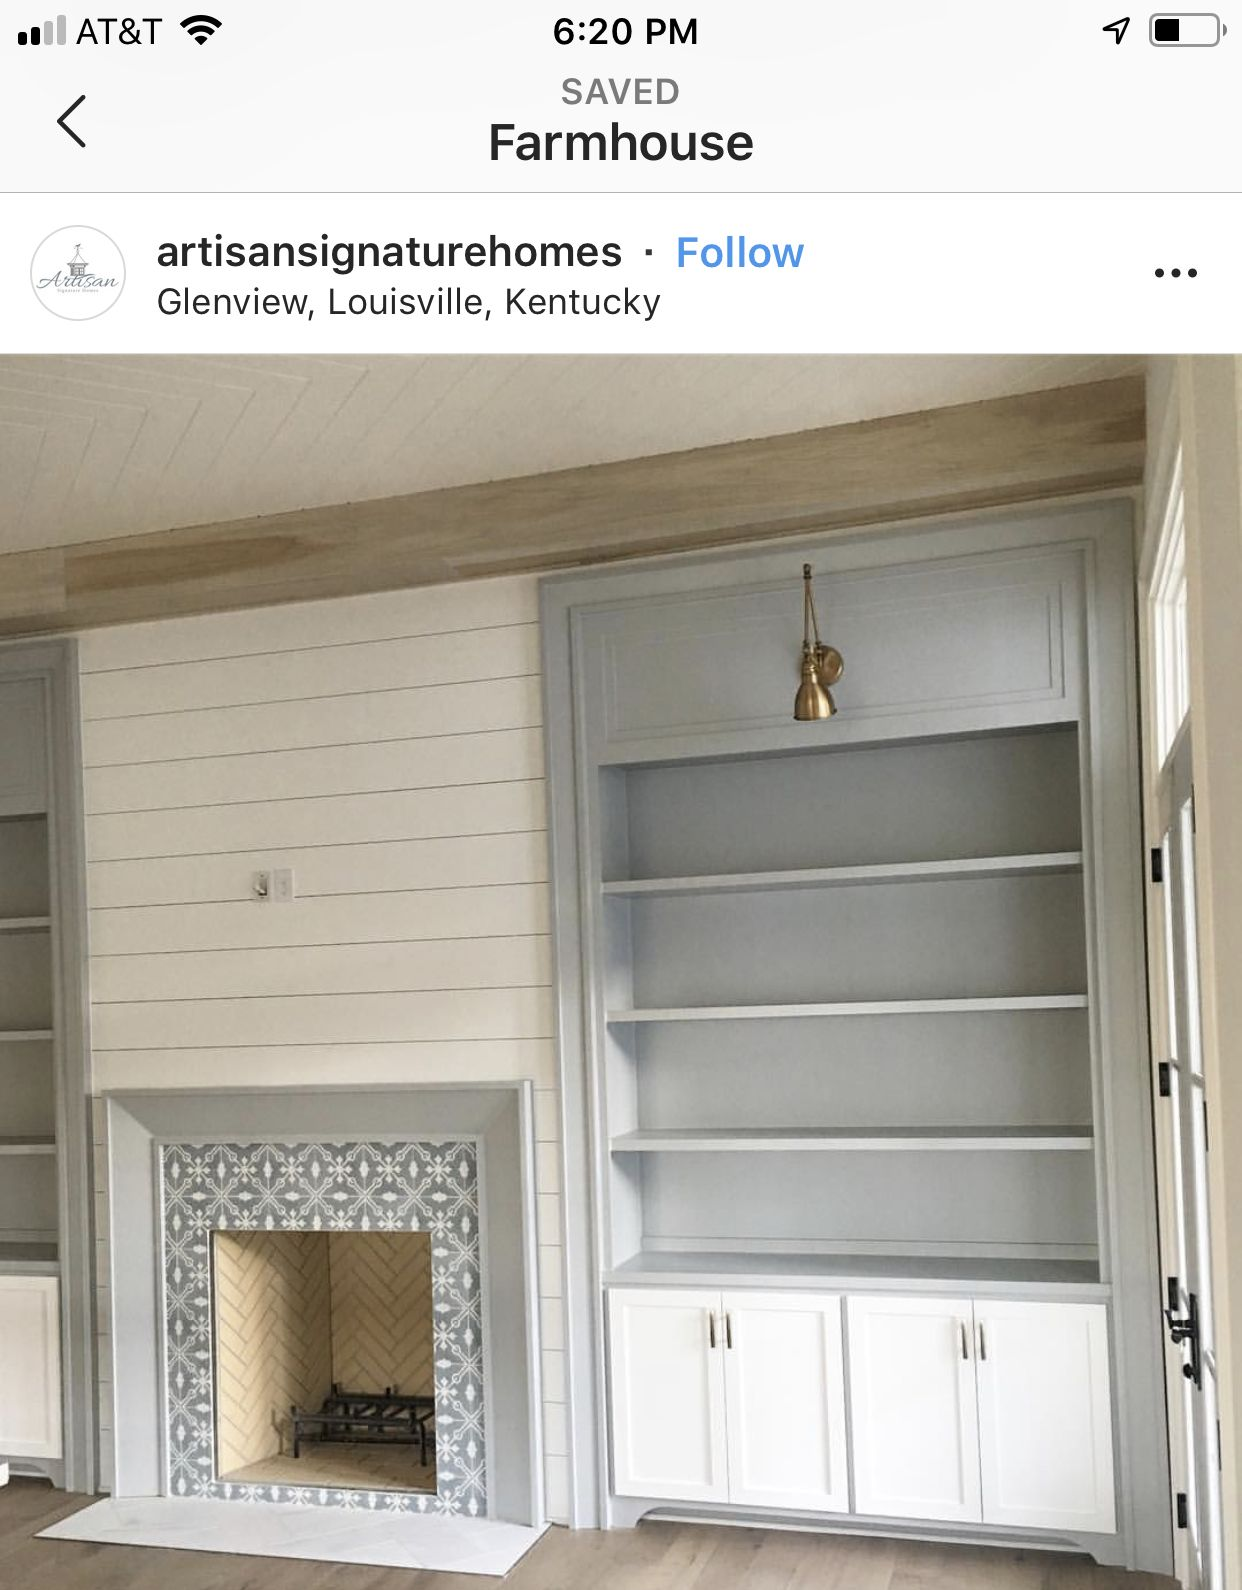 We Like The Style And Color Of The Bookshelf Fire Place To Have Shiplap Ceramic And Beam Home Fireplace Fireplace Built Ins Fireplace Bookshelves